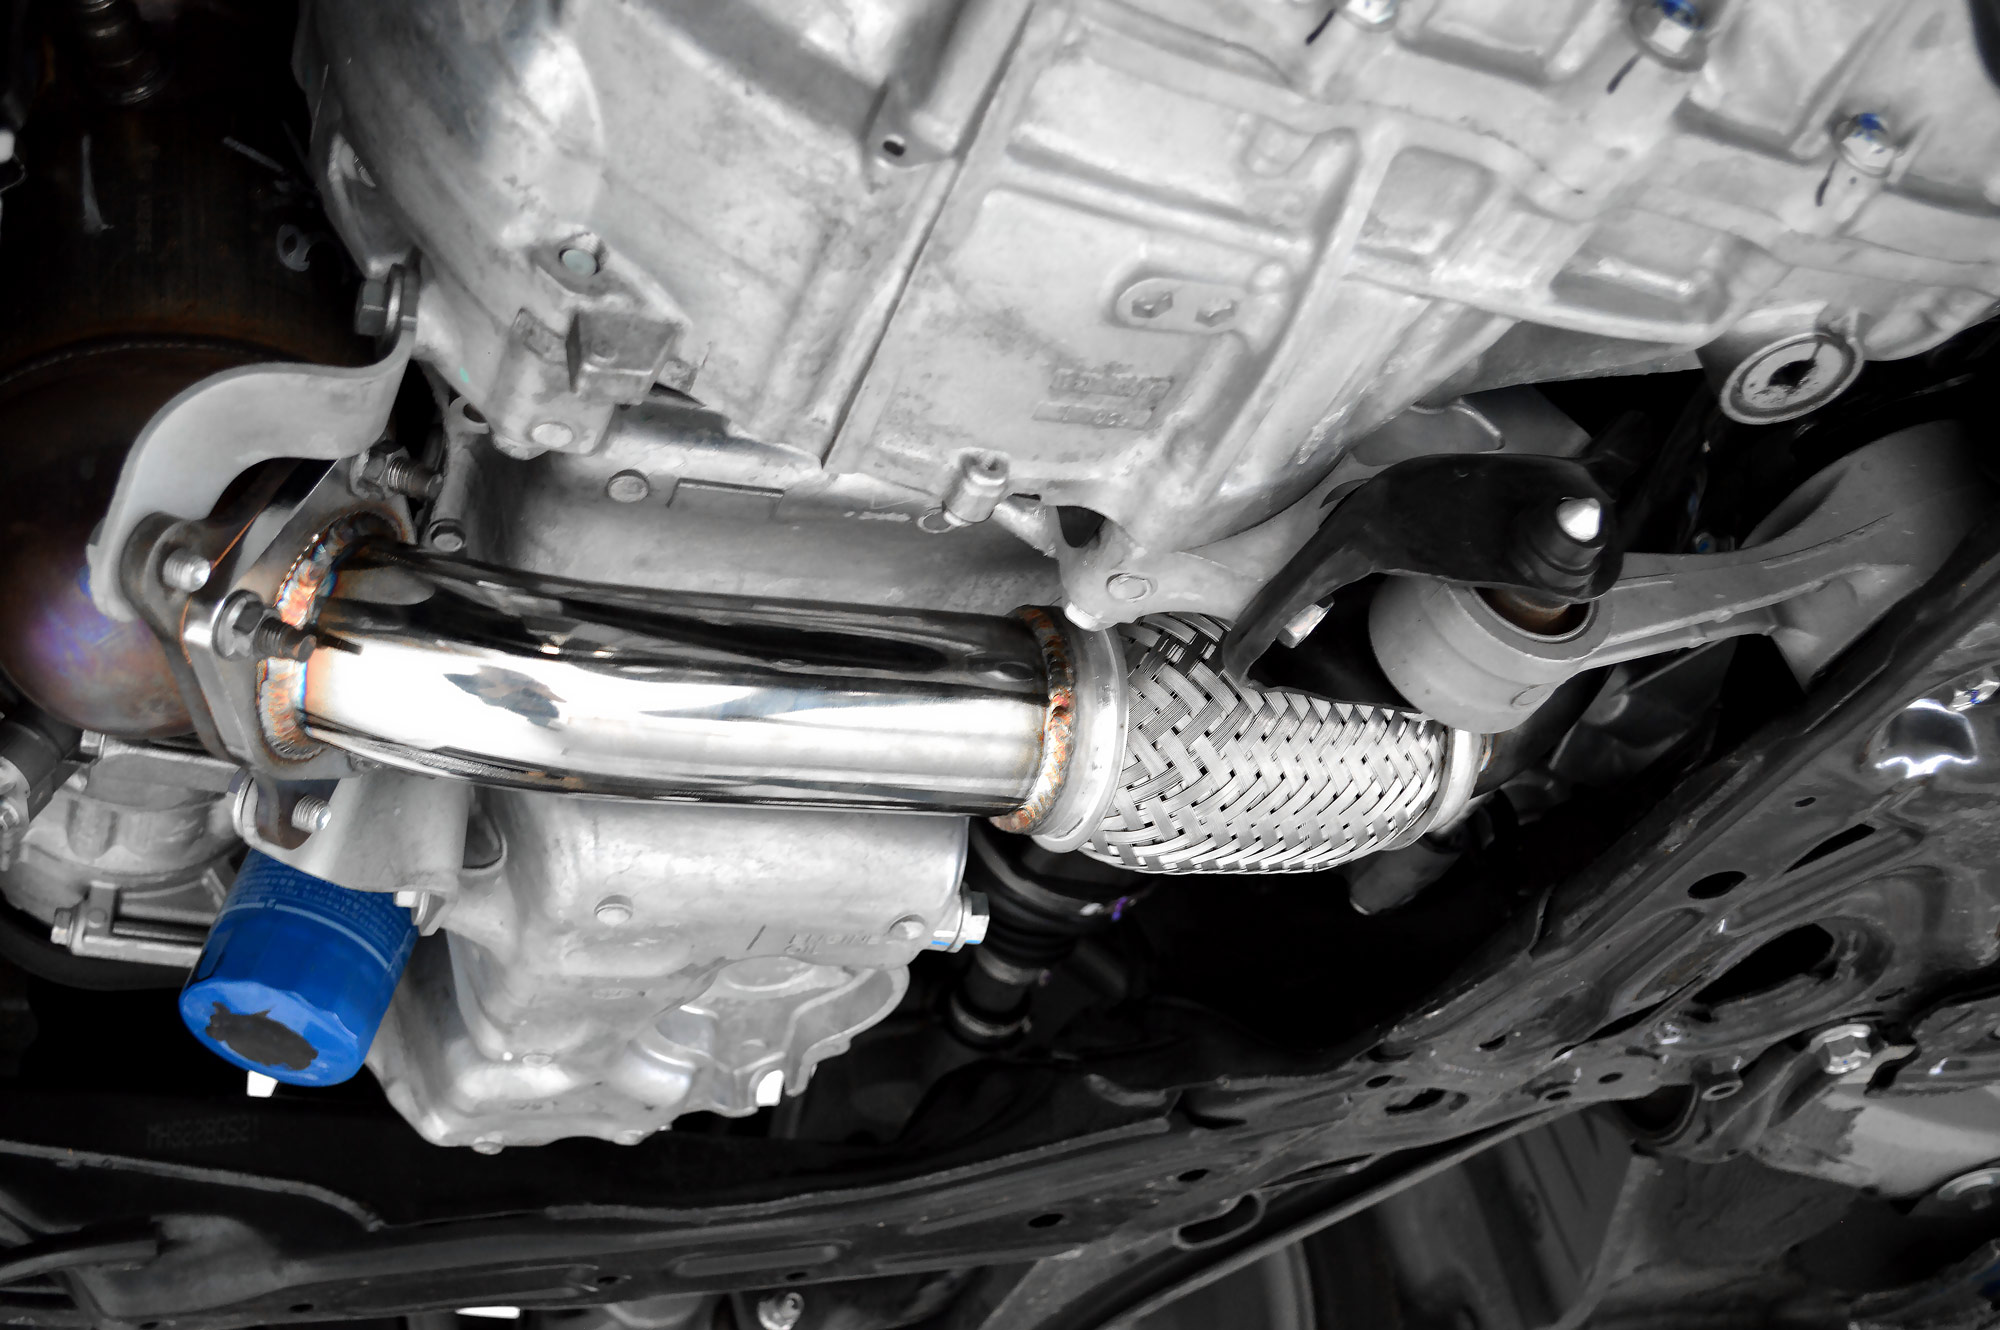 Civic-Front-Pipe-Installed-1-web.jpg